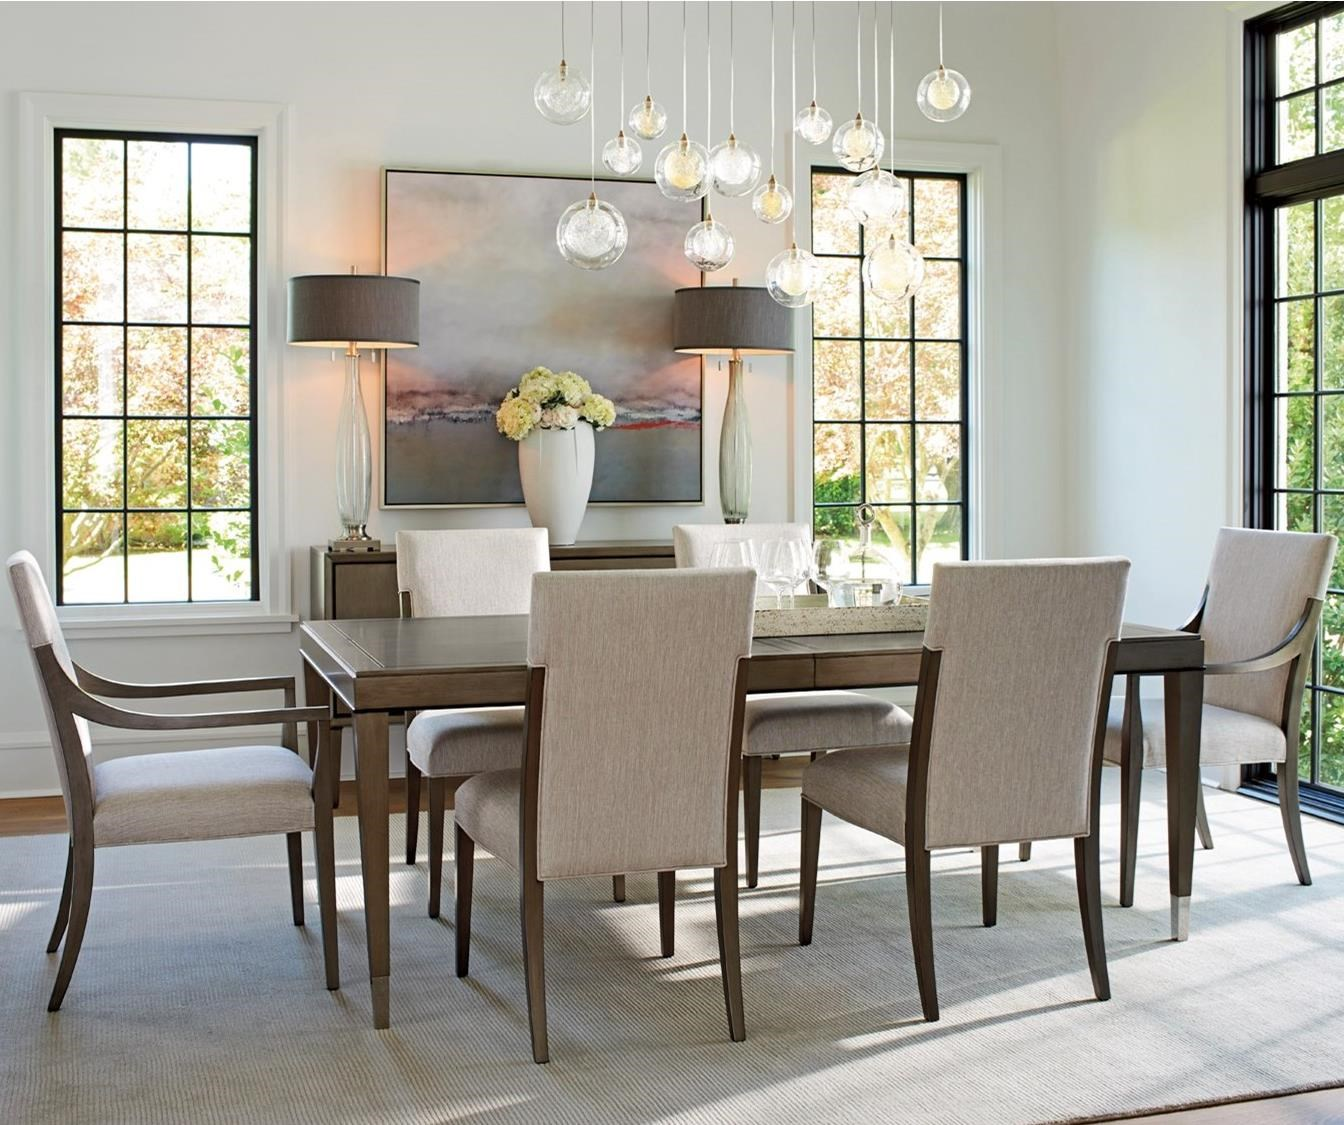 Lexington Furniture Dining Room Chairs